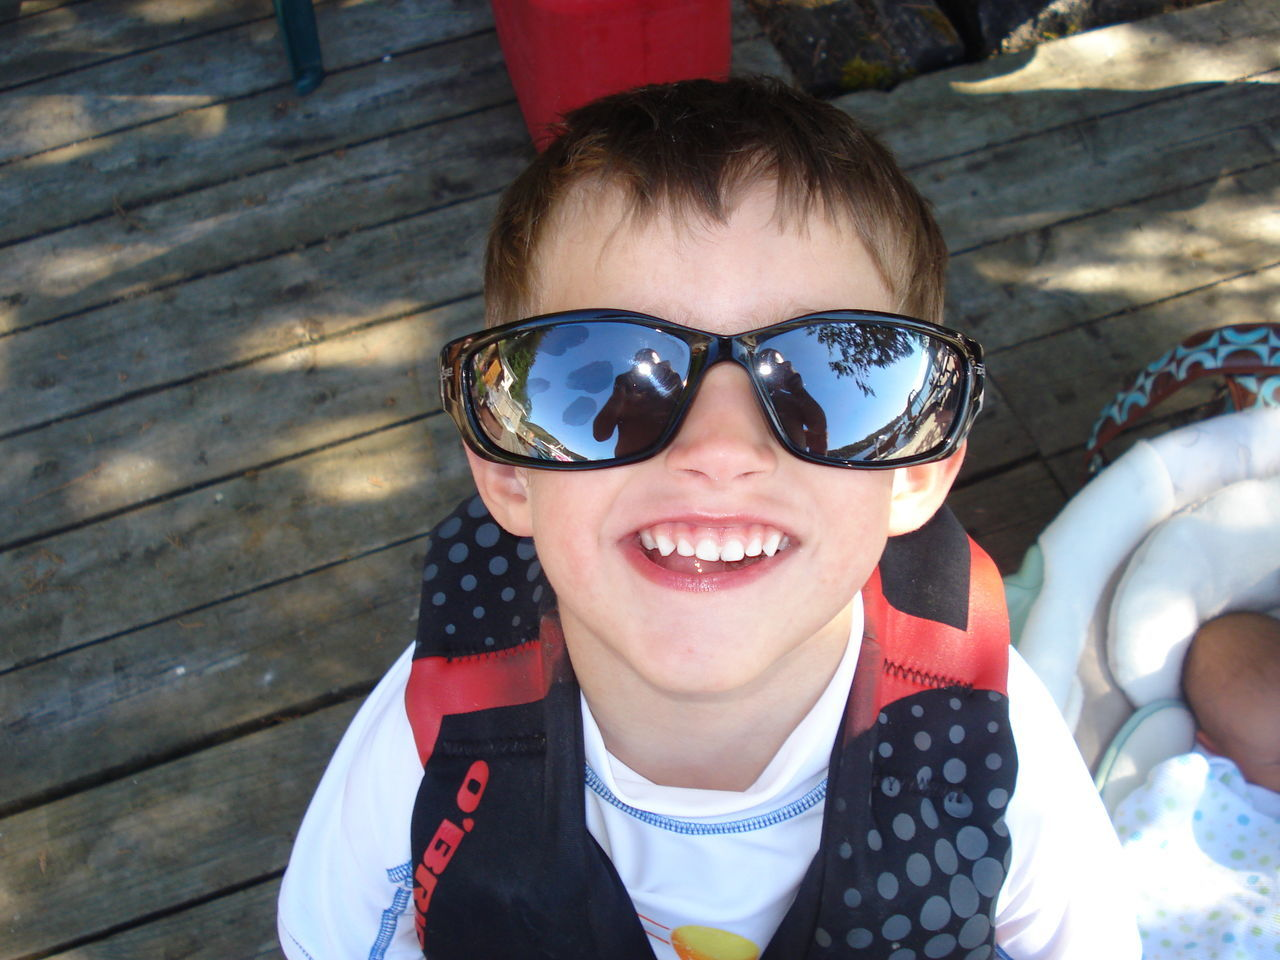 High Angle Portrait Of Smiling Boy Wearing Sunglasses While Sitting On Wood